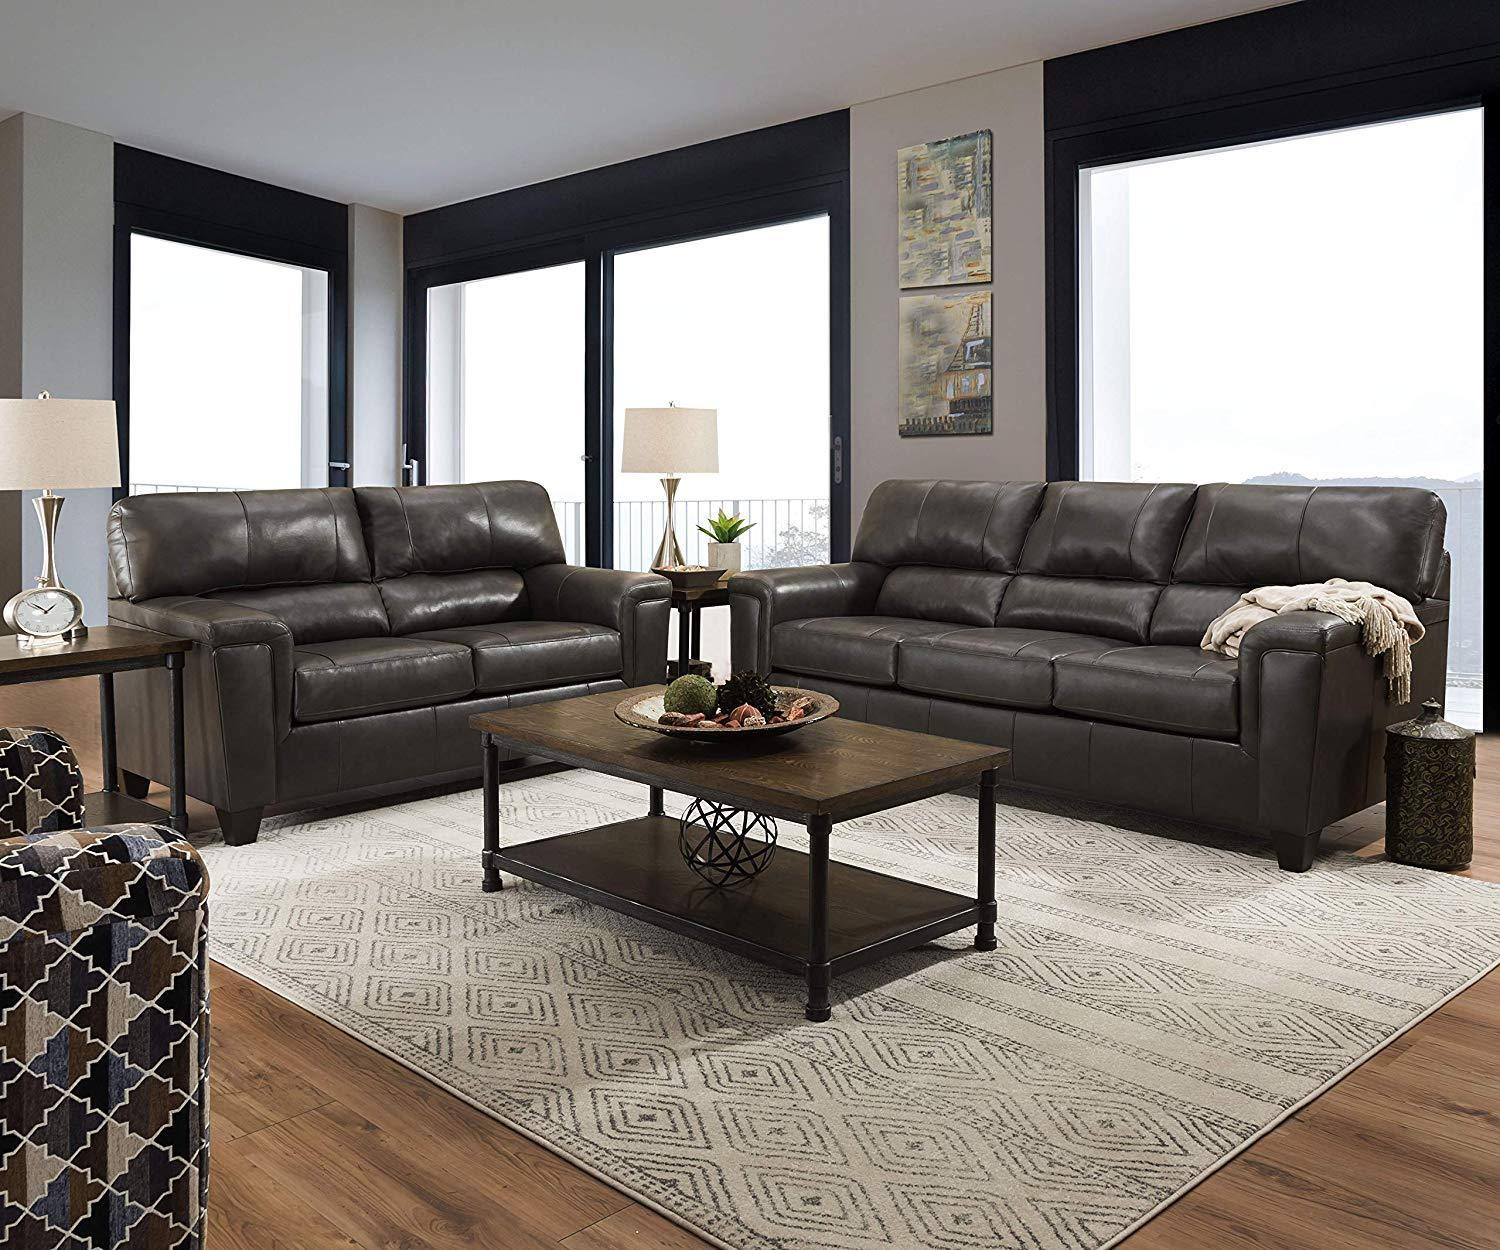 Awesome 2038 Lane Furniture Soft Touch Fog Leather Sofa And Loveseat Beutiful Home Inspiration Truamahrainfo